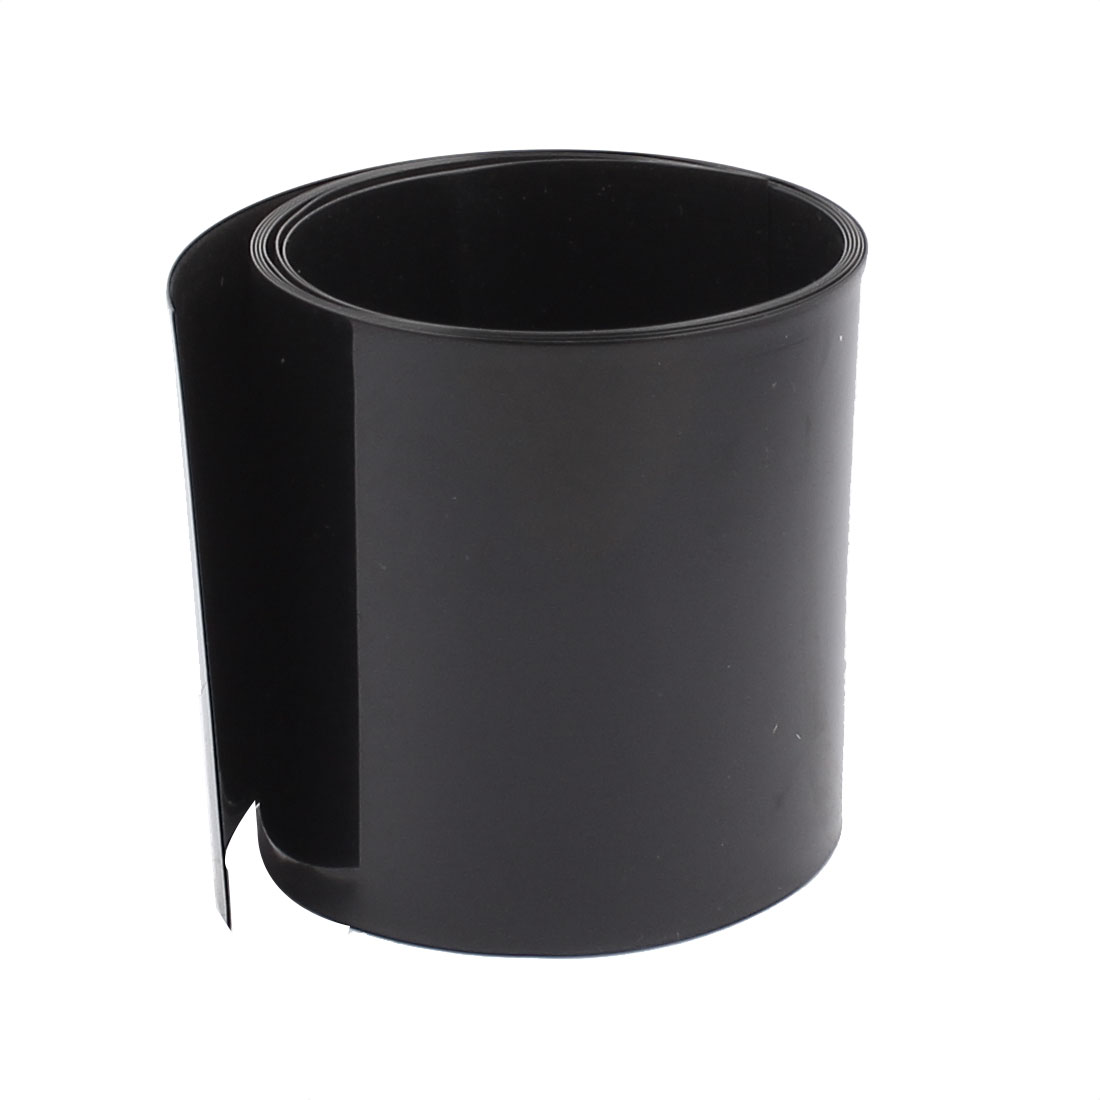 3.3ft 55mm Flat 35mm Dia PVC Heat Shrink Tubing Black for for AAA Battery Pack